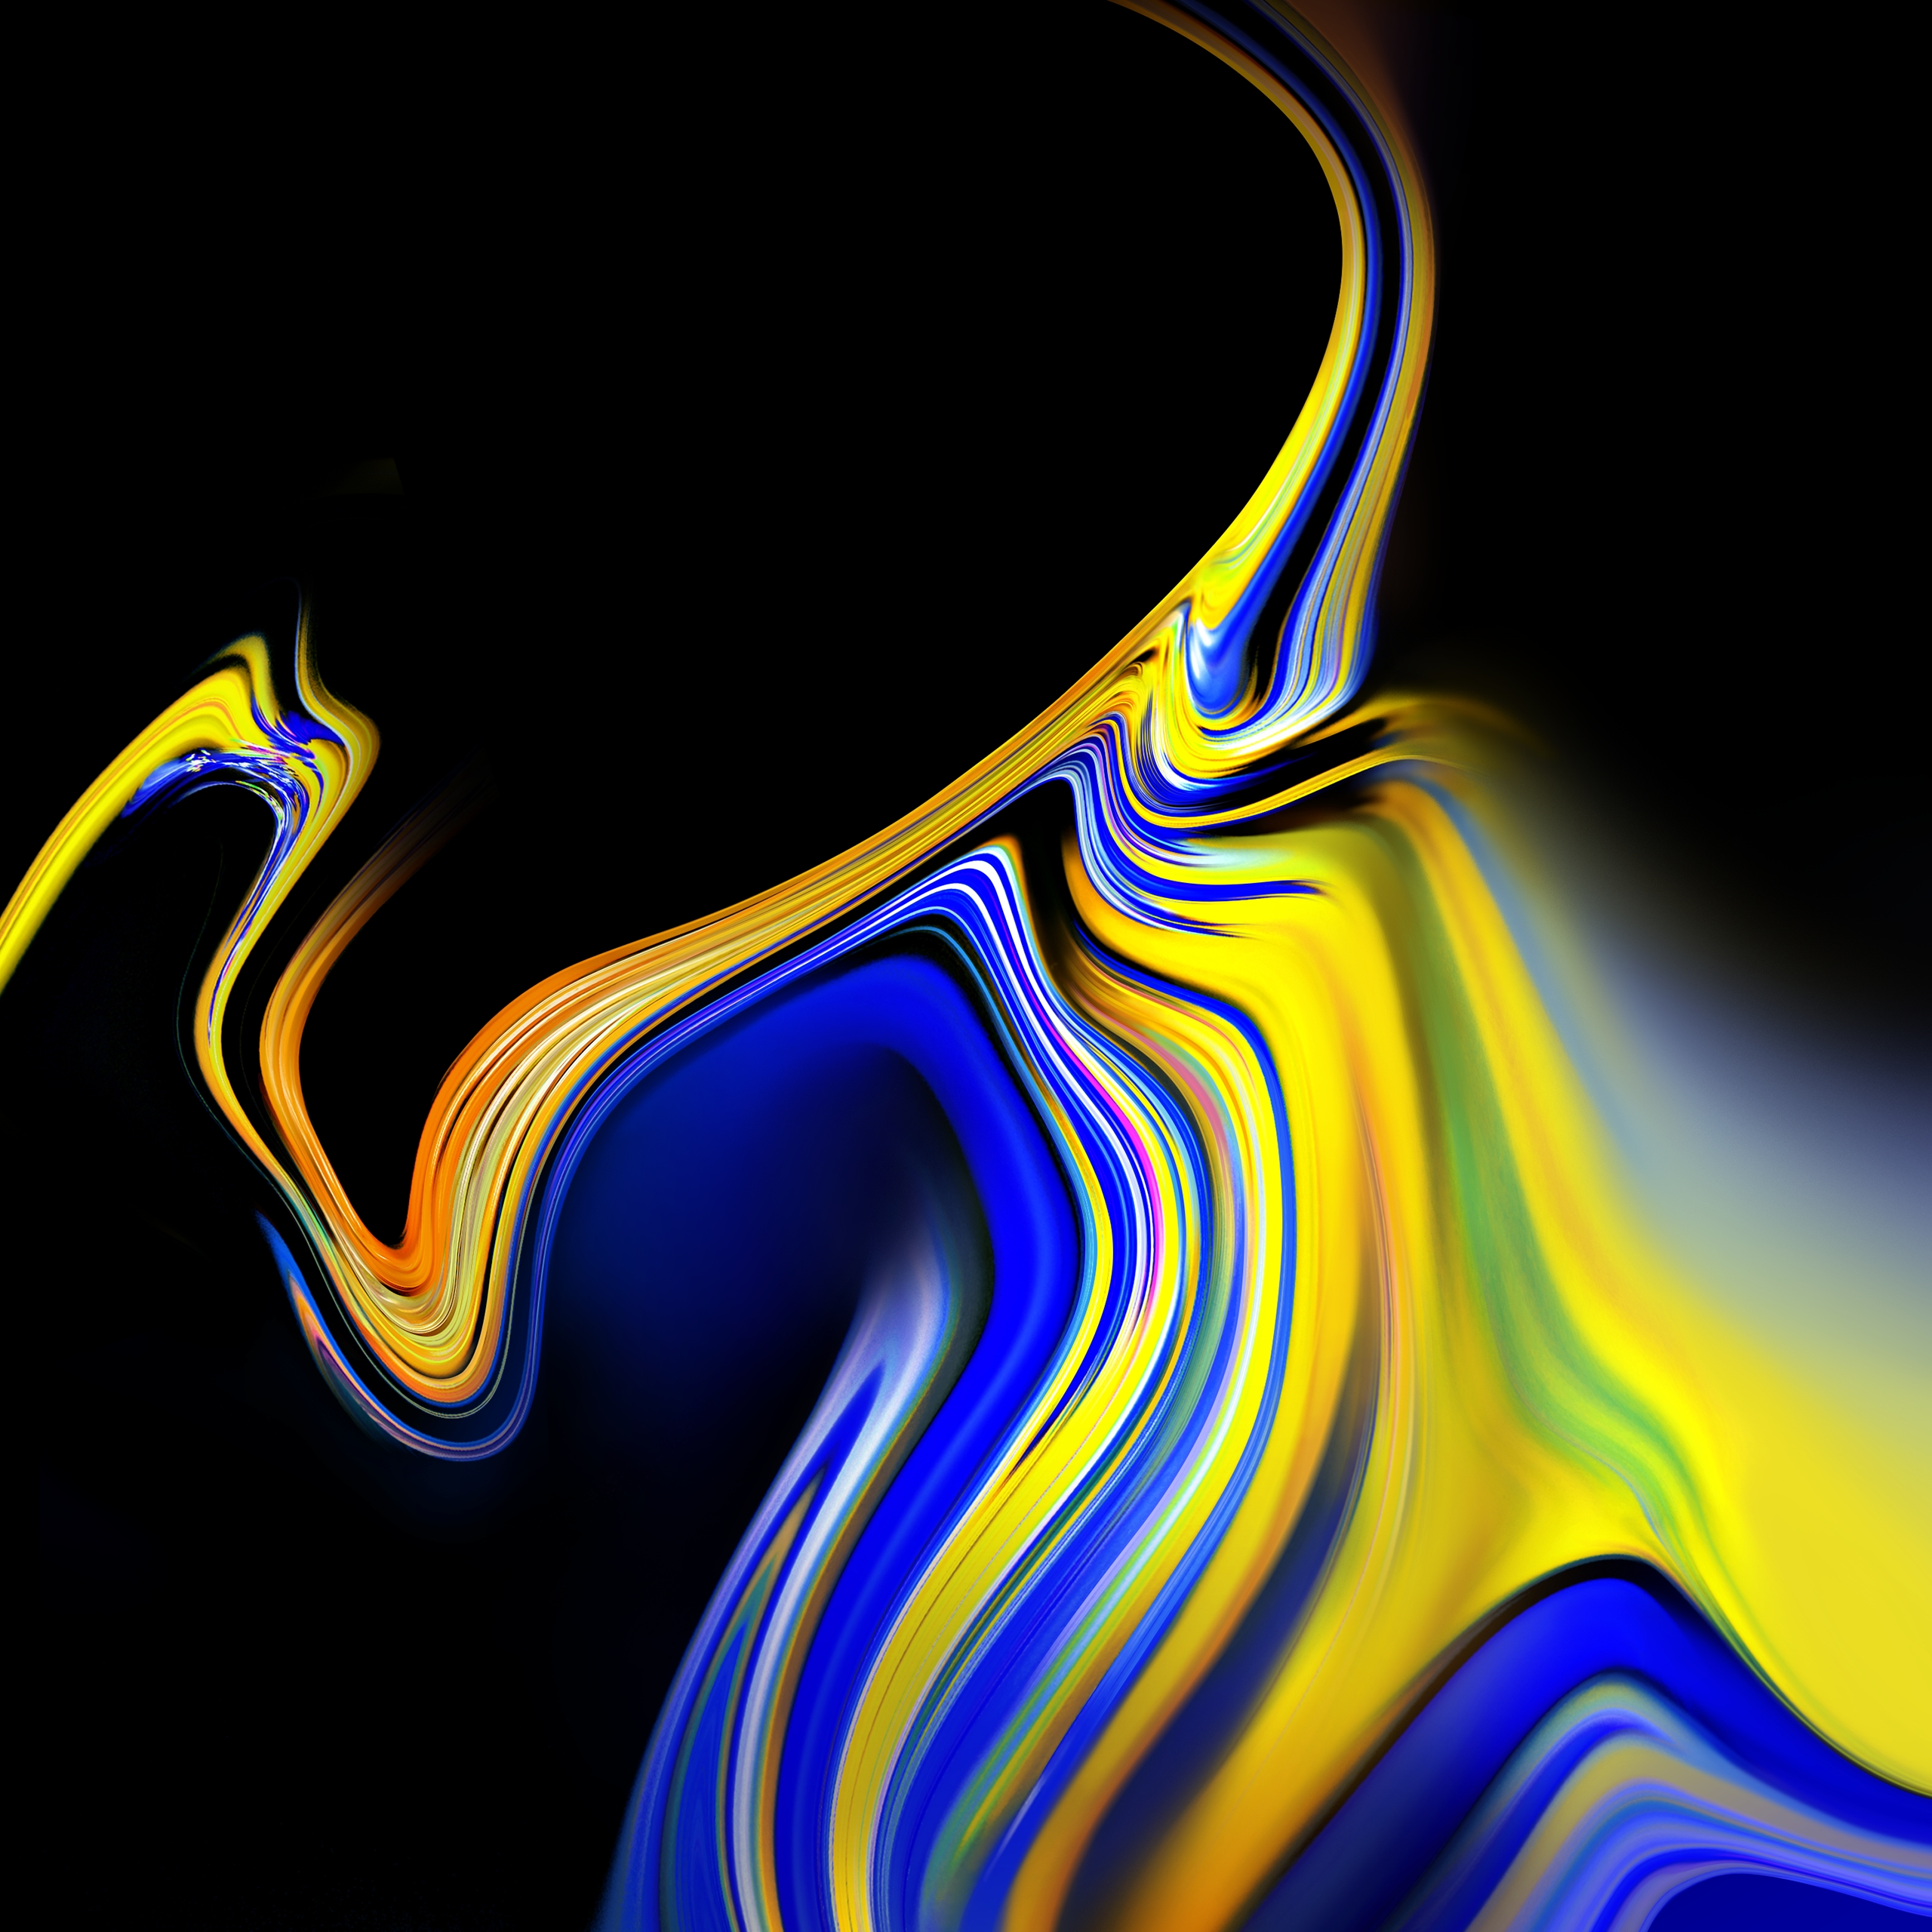 Download The Samsung Galaxy Note 9s Default Wallpapers Here